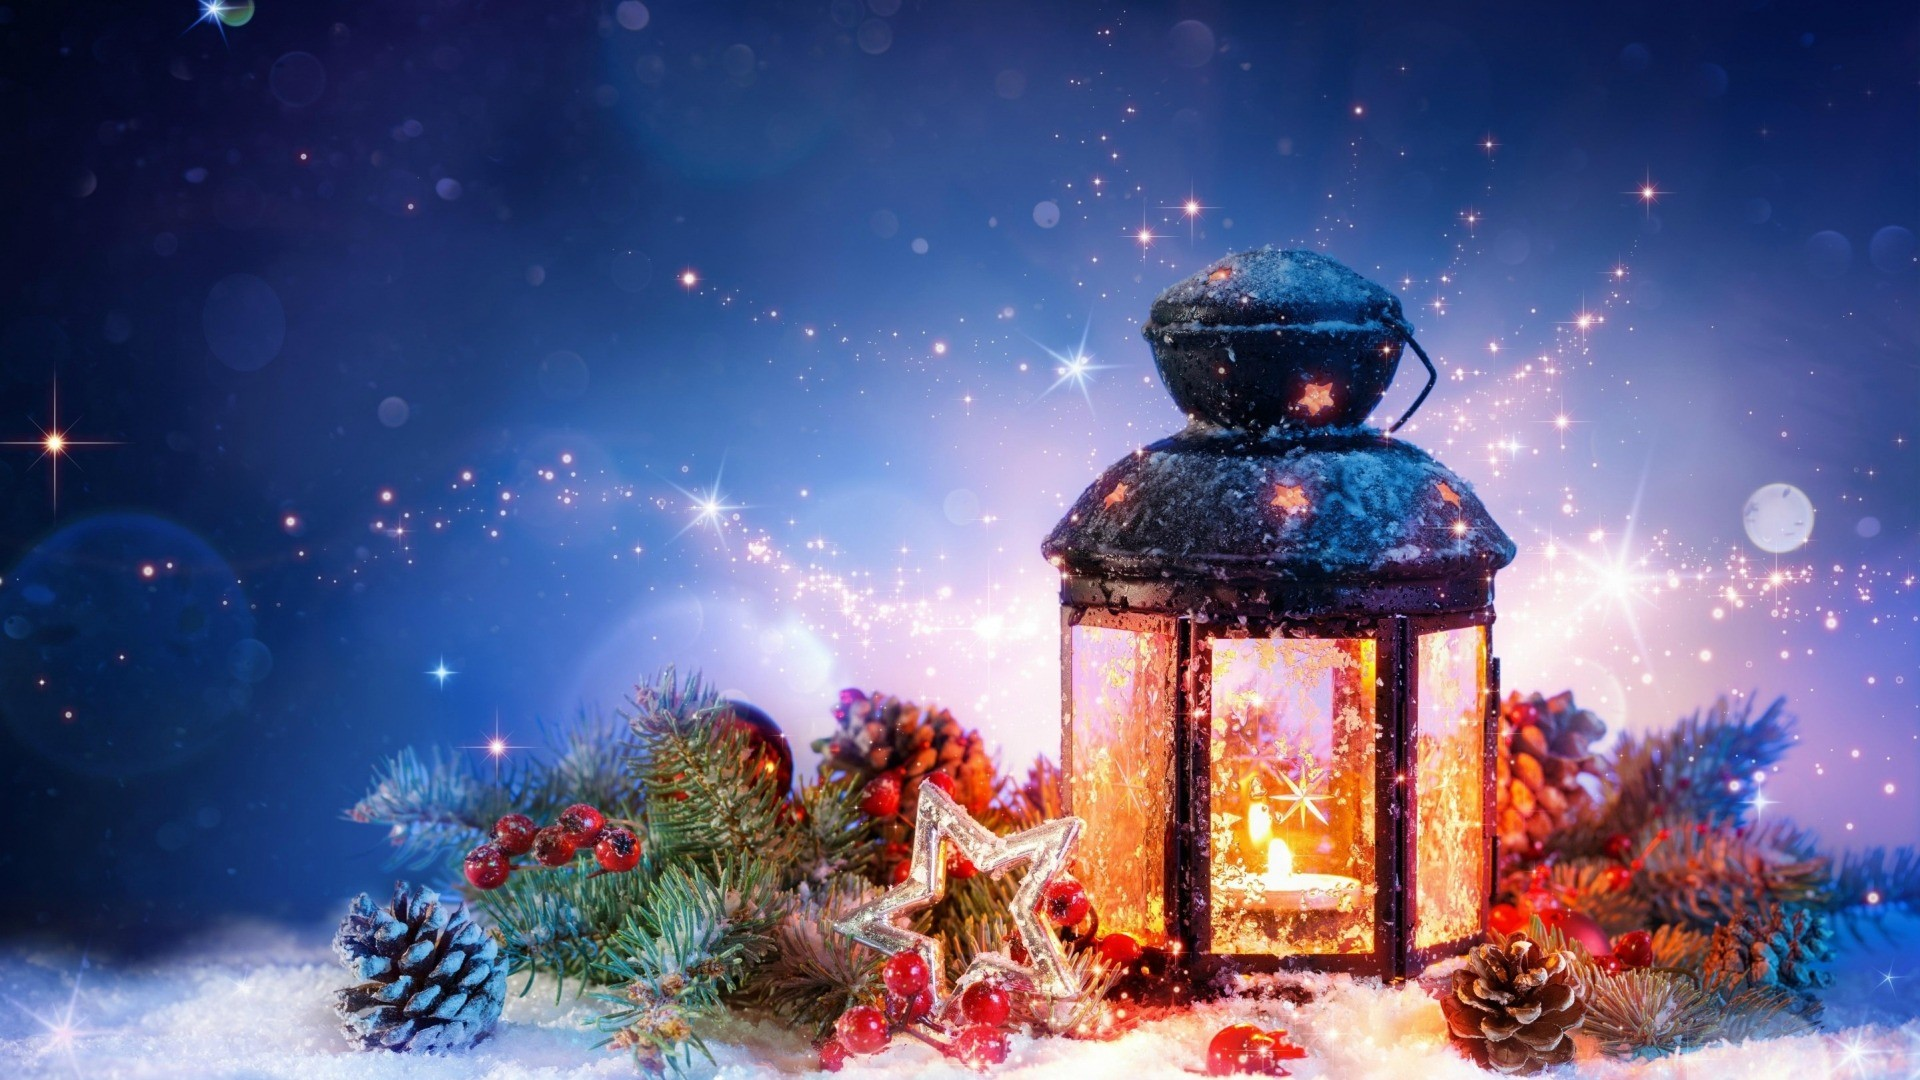 Christmas Star Wallpaper Wallpapers Browse